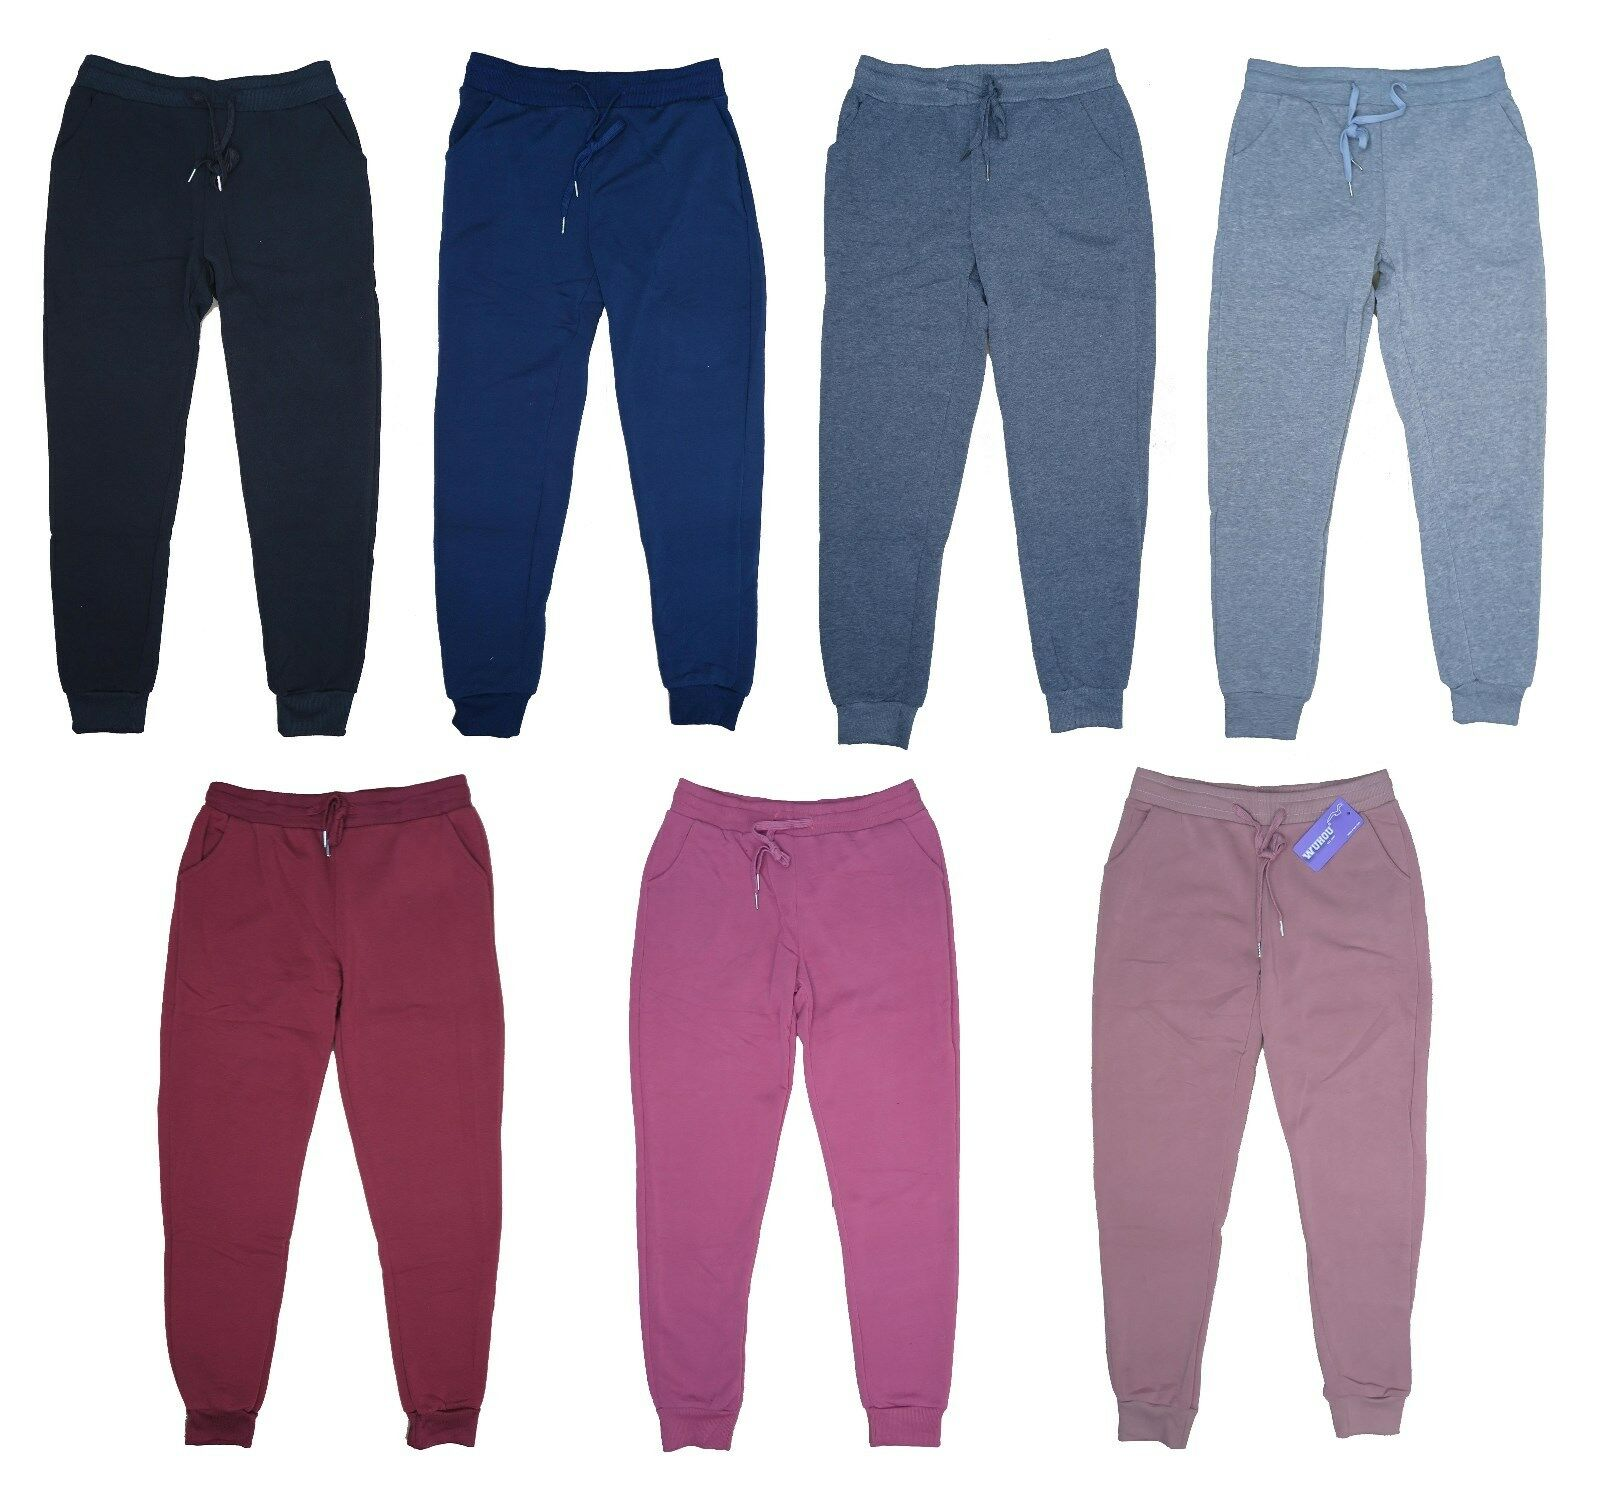 Women's Fleece Lounge Pants Cotton Sweatpants w/ Pockets Cuf